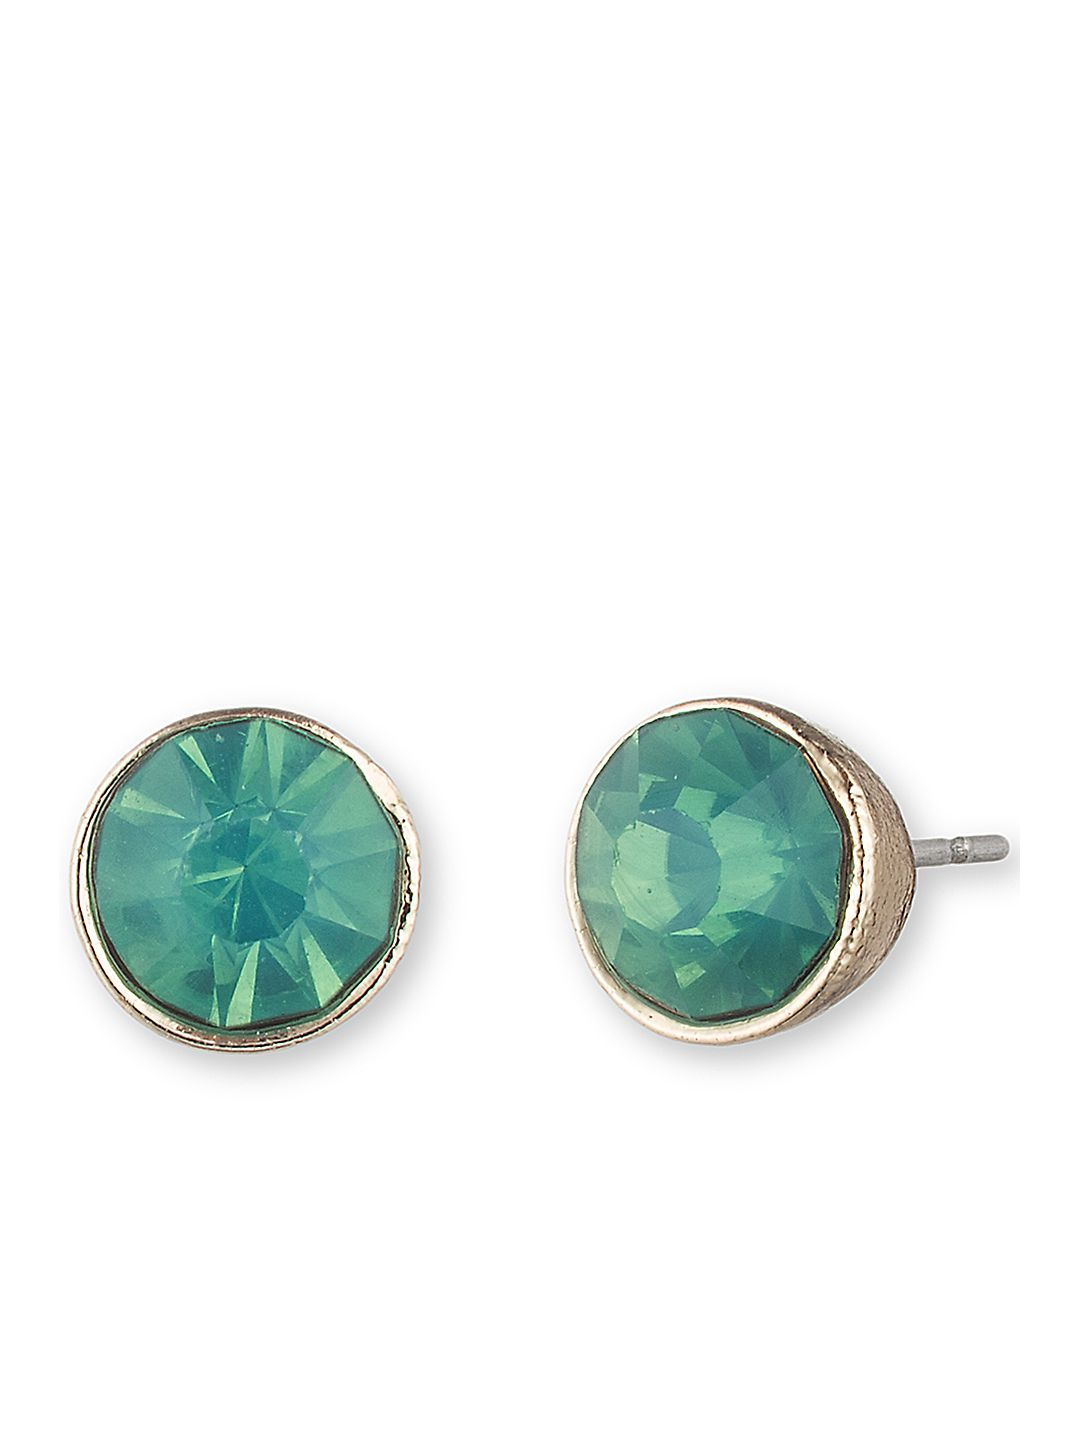 Goldtone and Aquamarine Stud Earrings